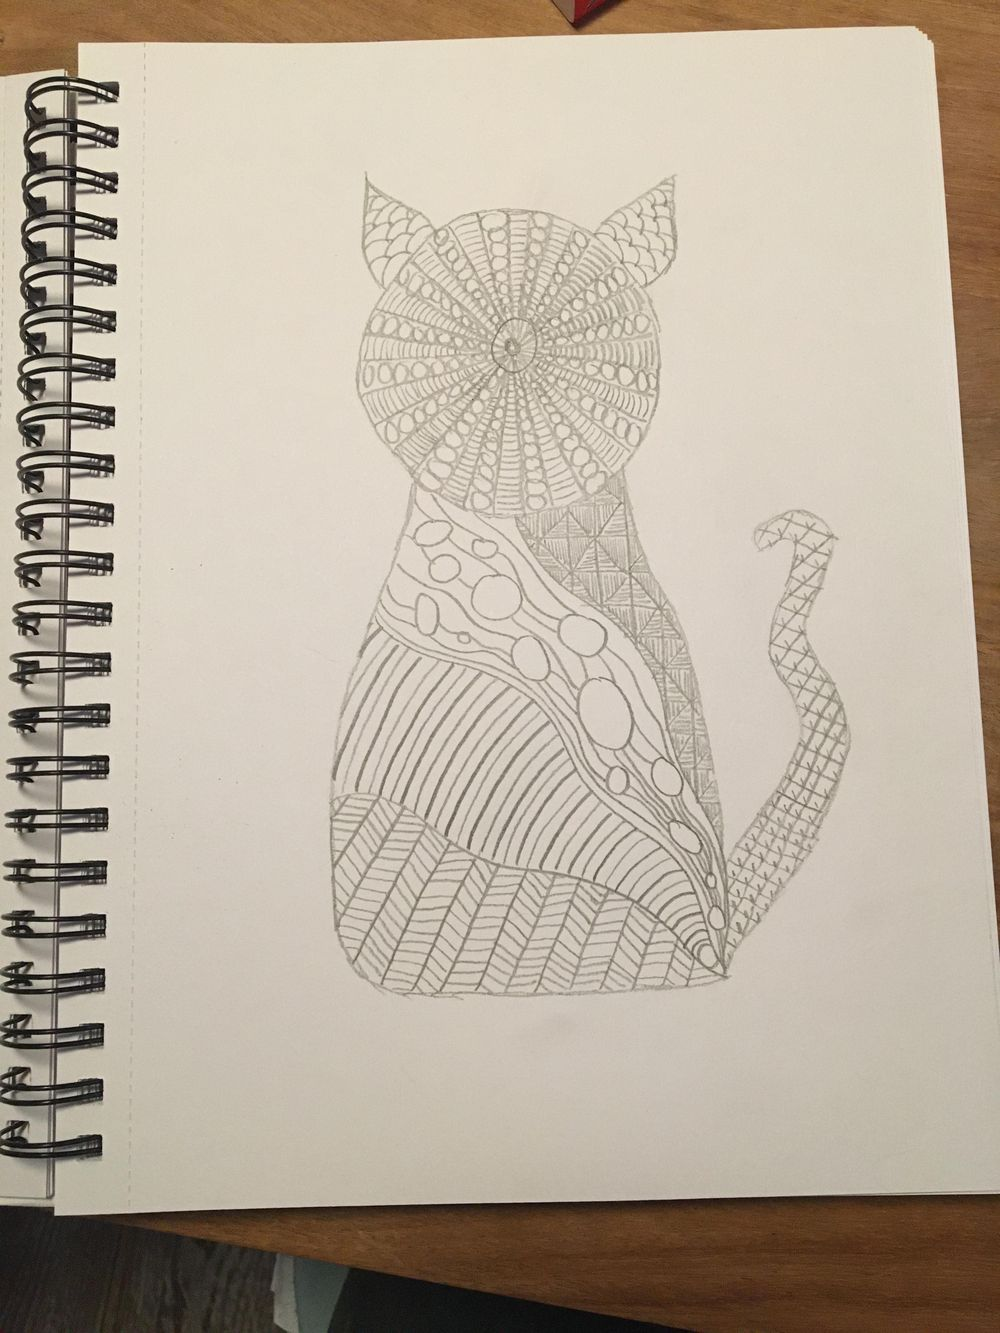 Beginner Work - image 6 - student project